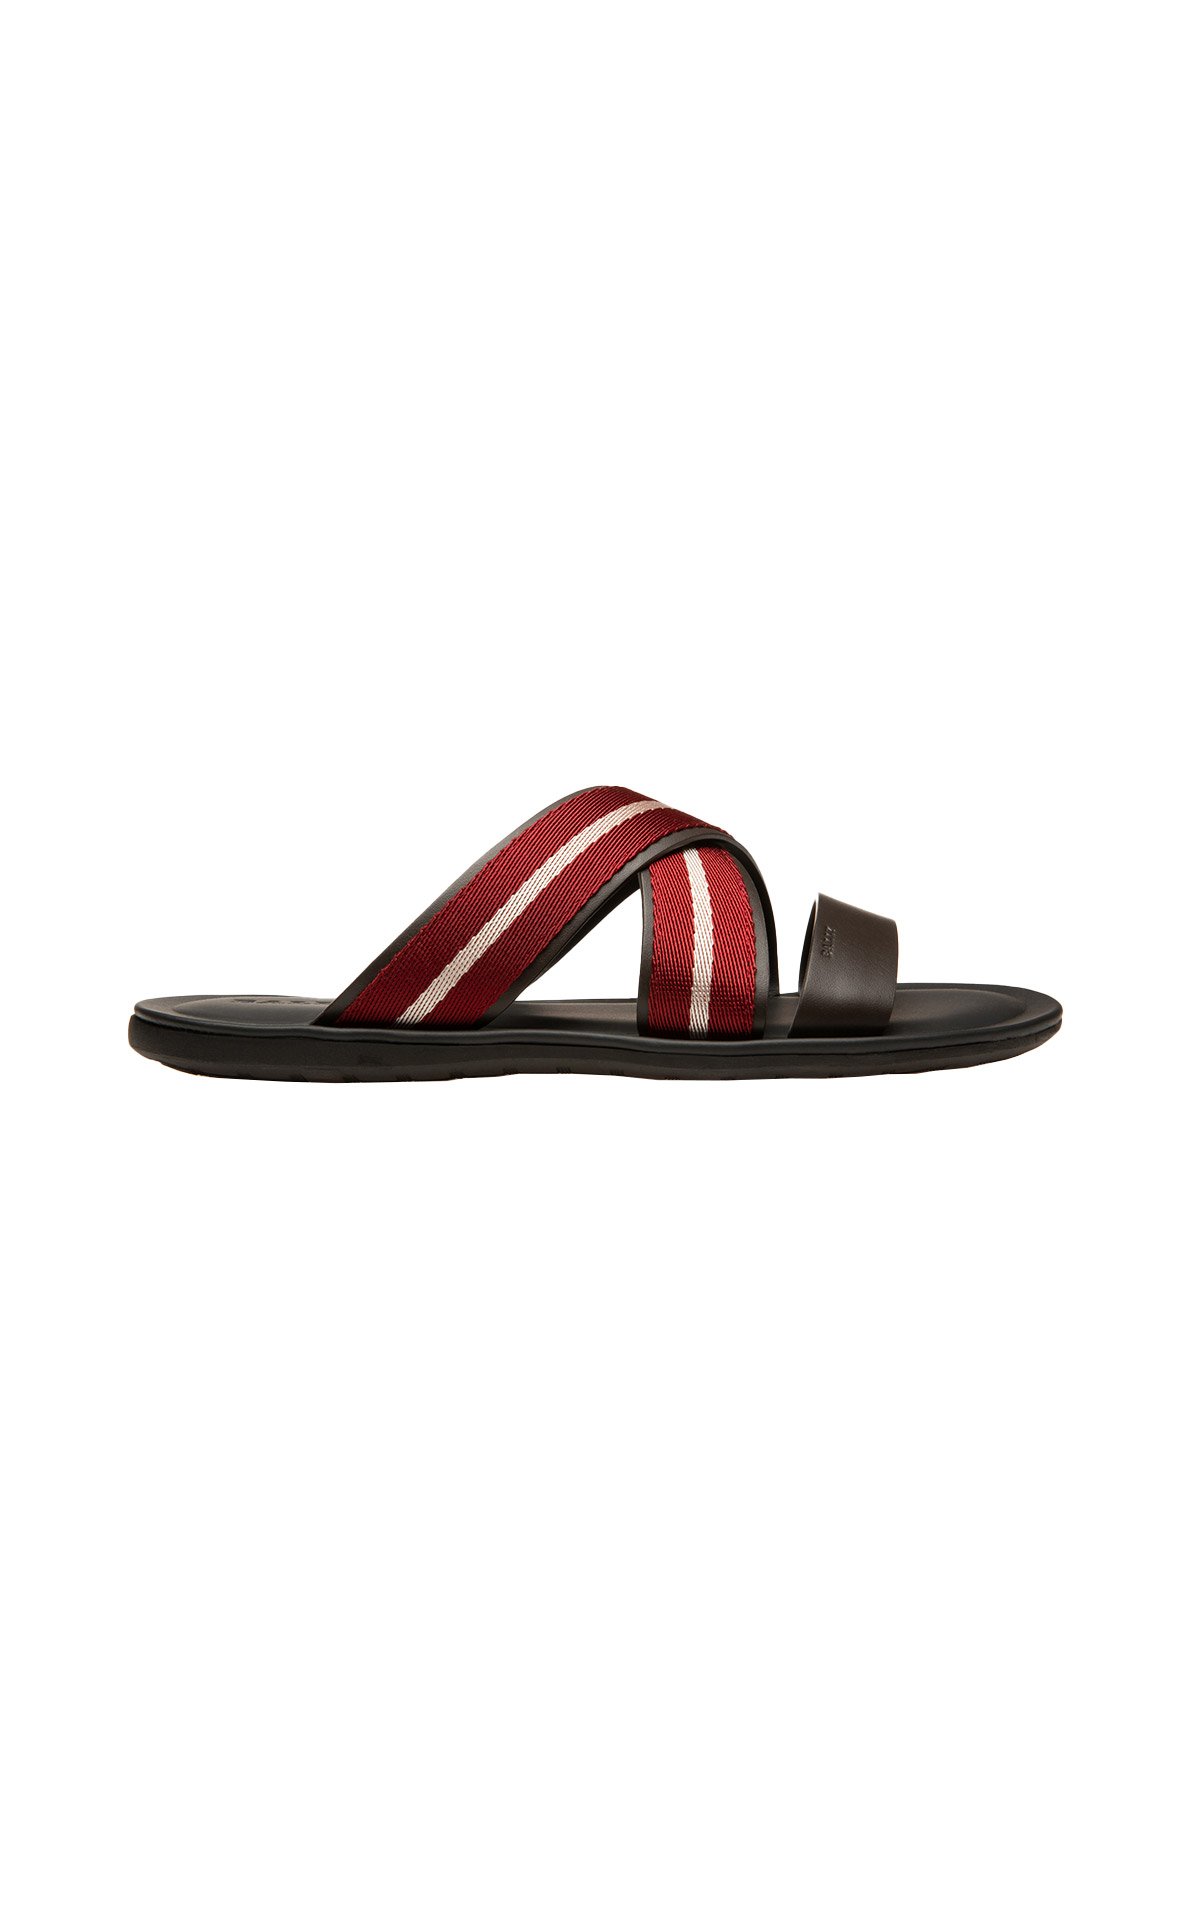 Sasha sandal for man Bally